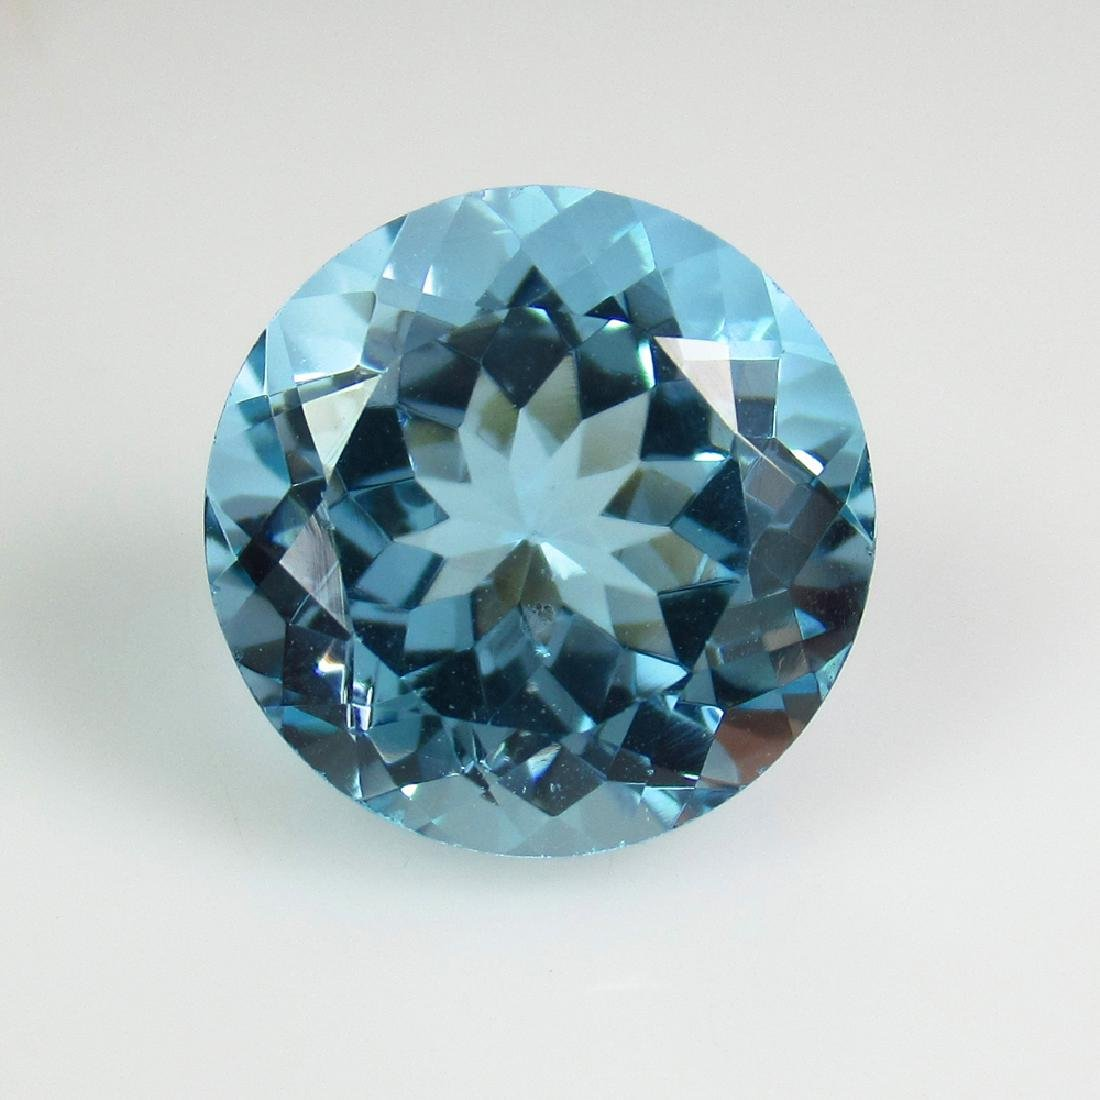 10.65 Ct Genuine Brazil Swiss Blue Topaz 13 mm Round